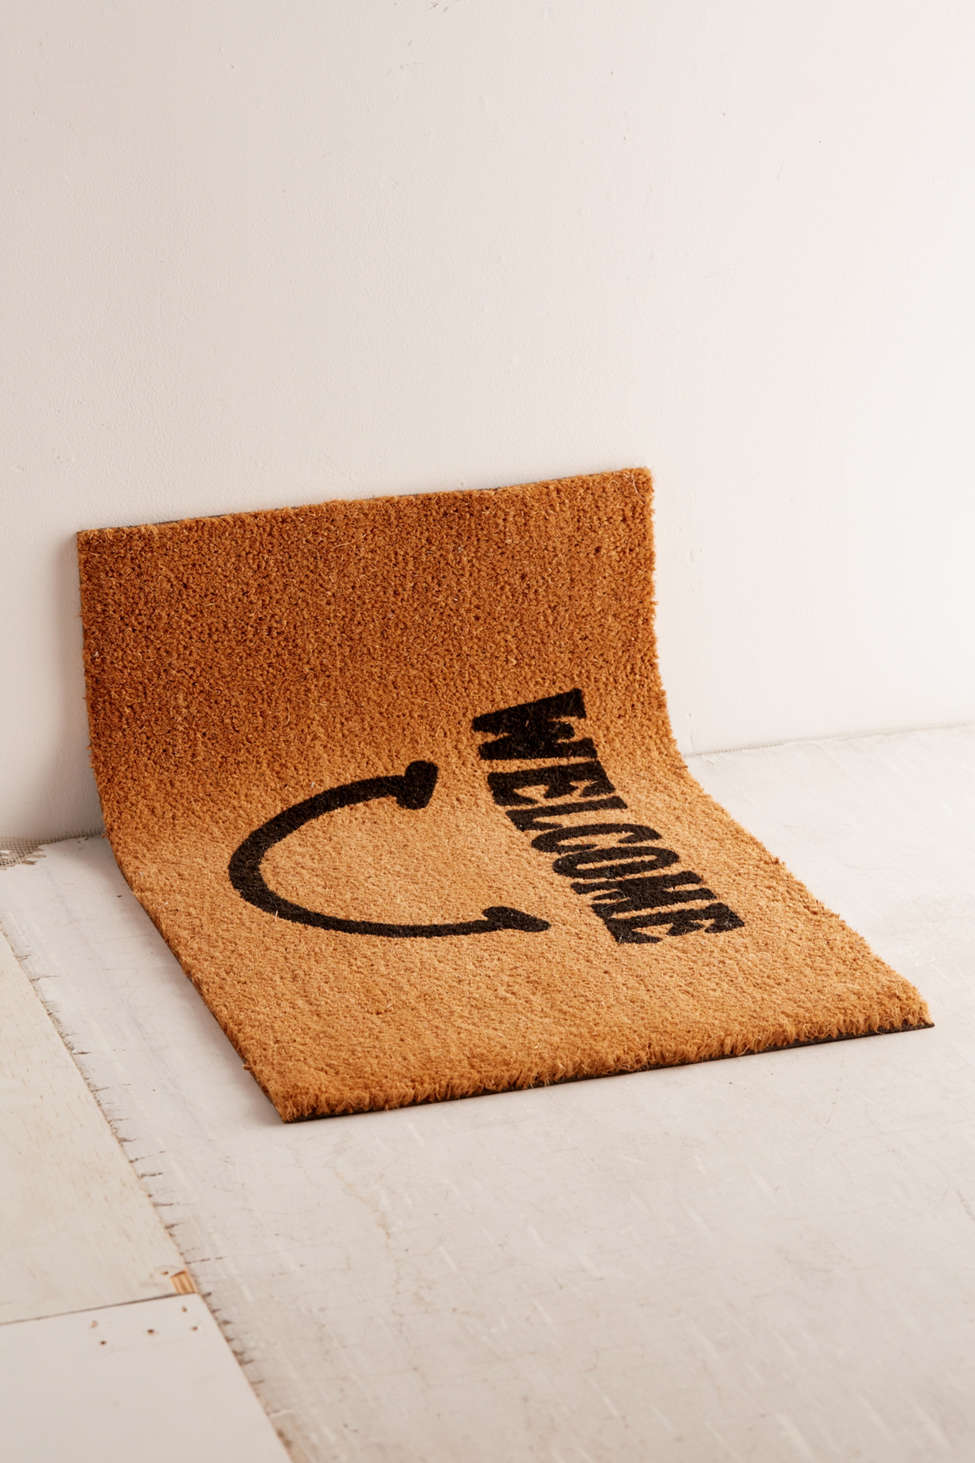 Slide View: 1: Chinatown Market For UO Smiley Doormat